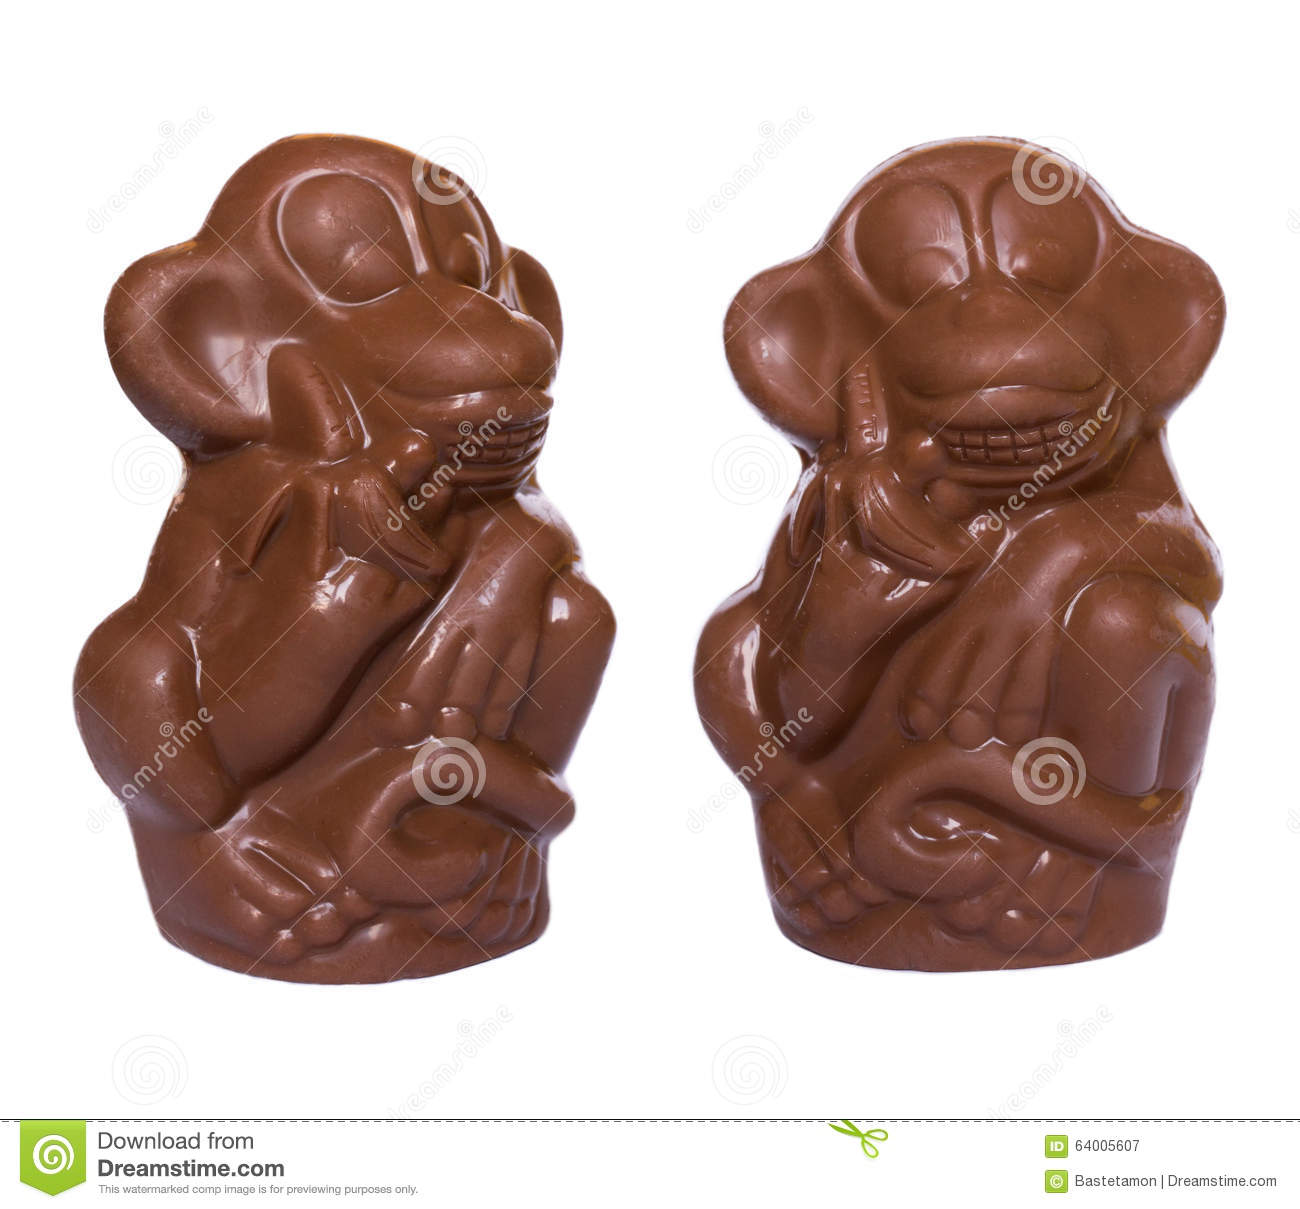 Chocolate Monkeys Figures Stock Illustration - Image: 64005607